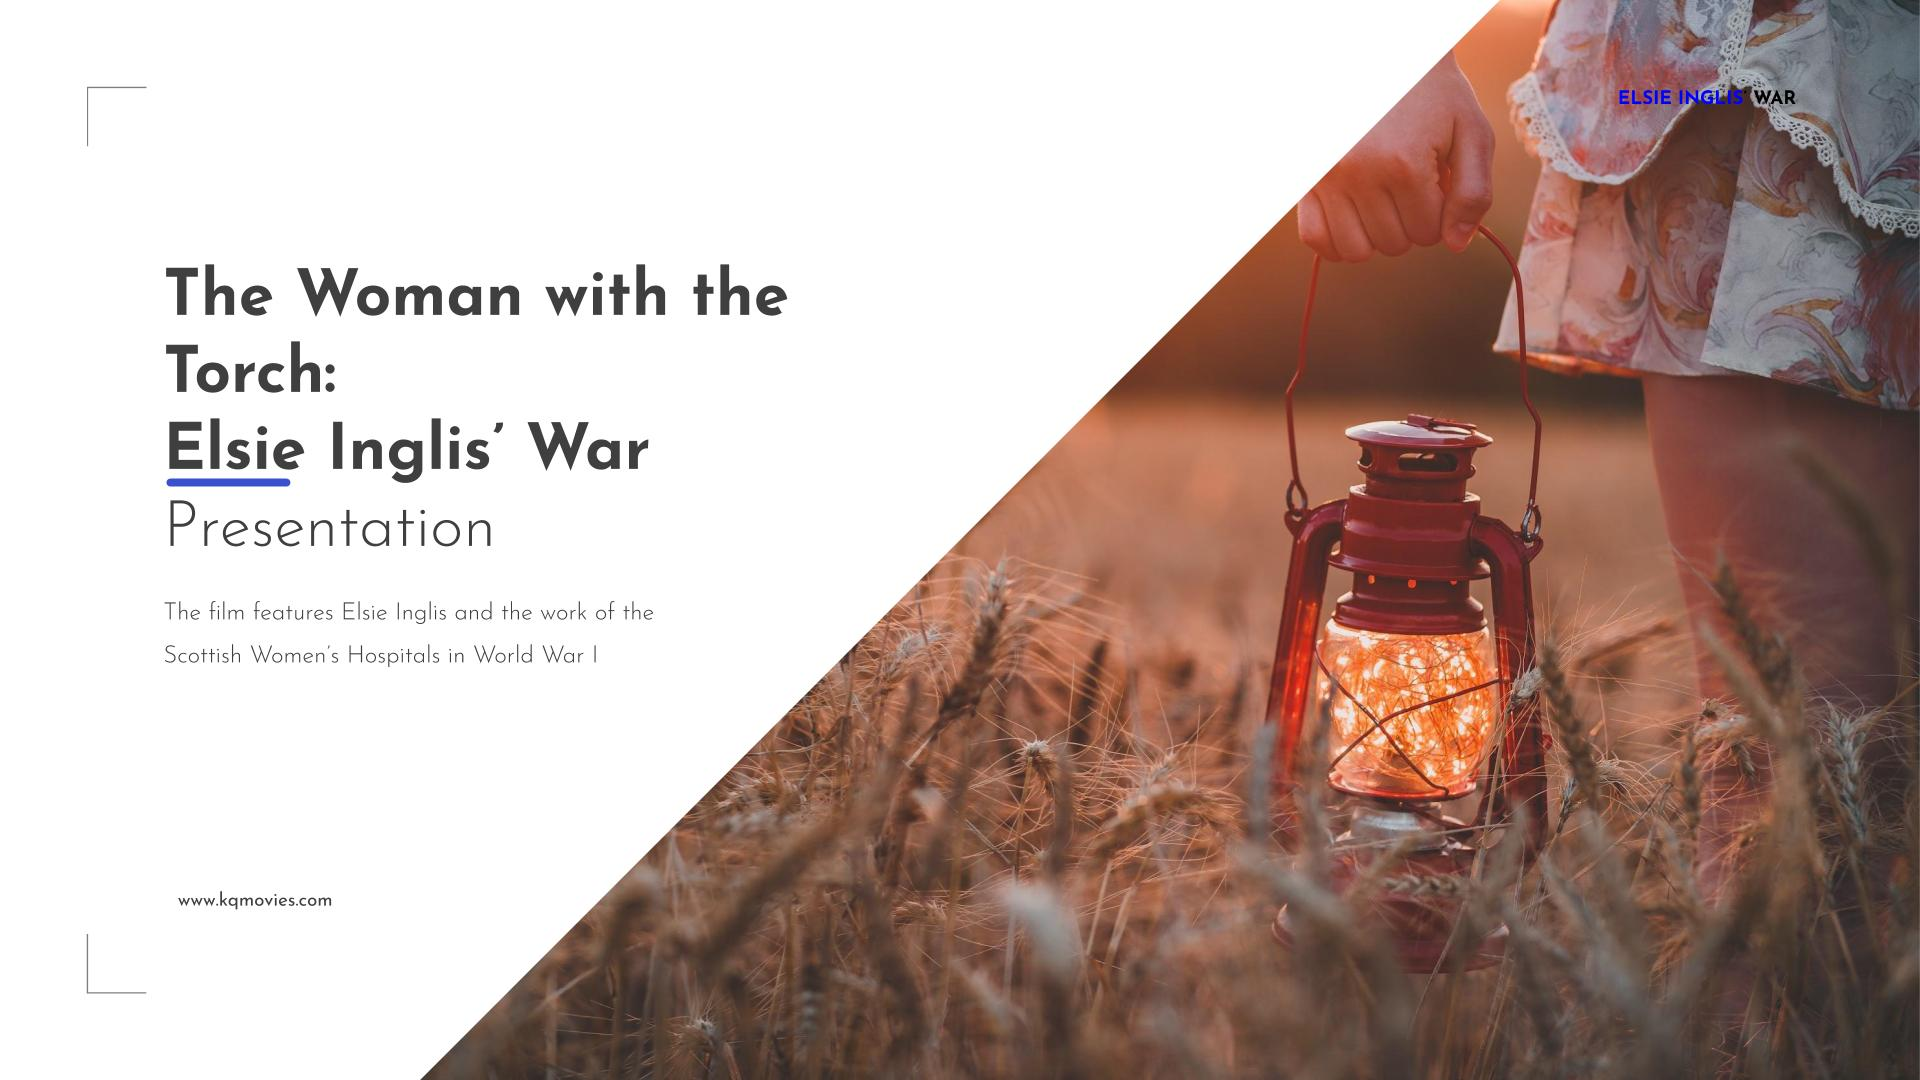 THE WOMAN WITH THE TORCH – ELSIE INGLIS' WAR